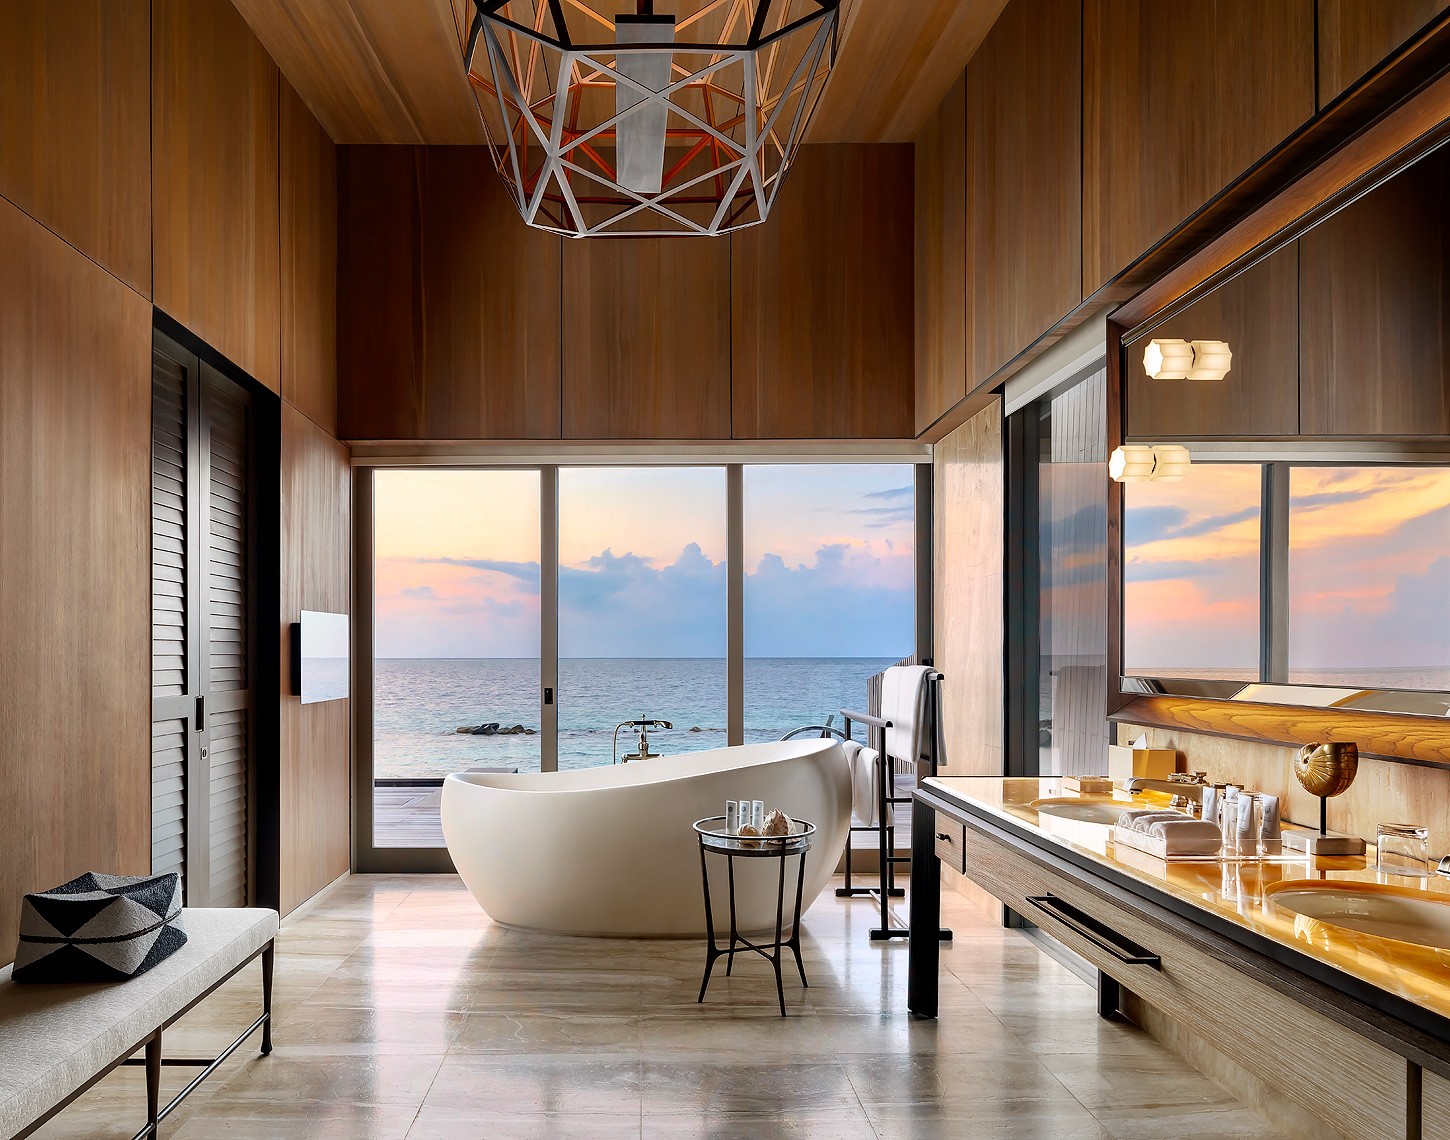 St Regis Maldives Resort, John Jacob Astor Estate Bathroom